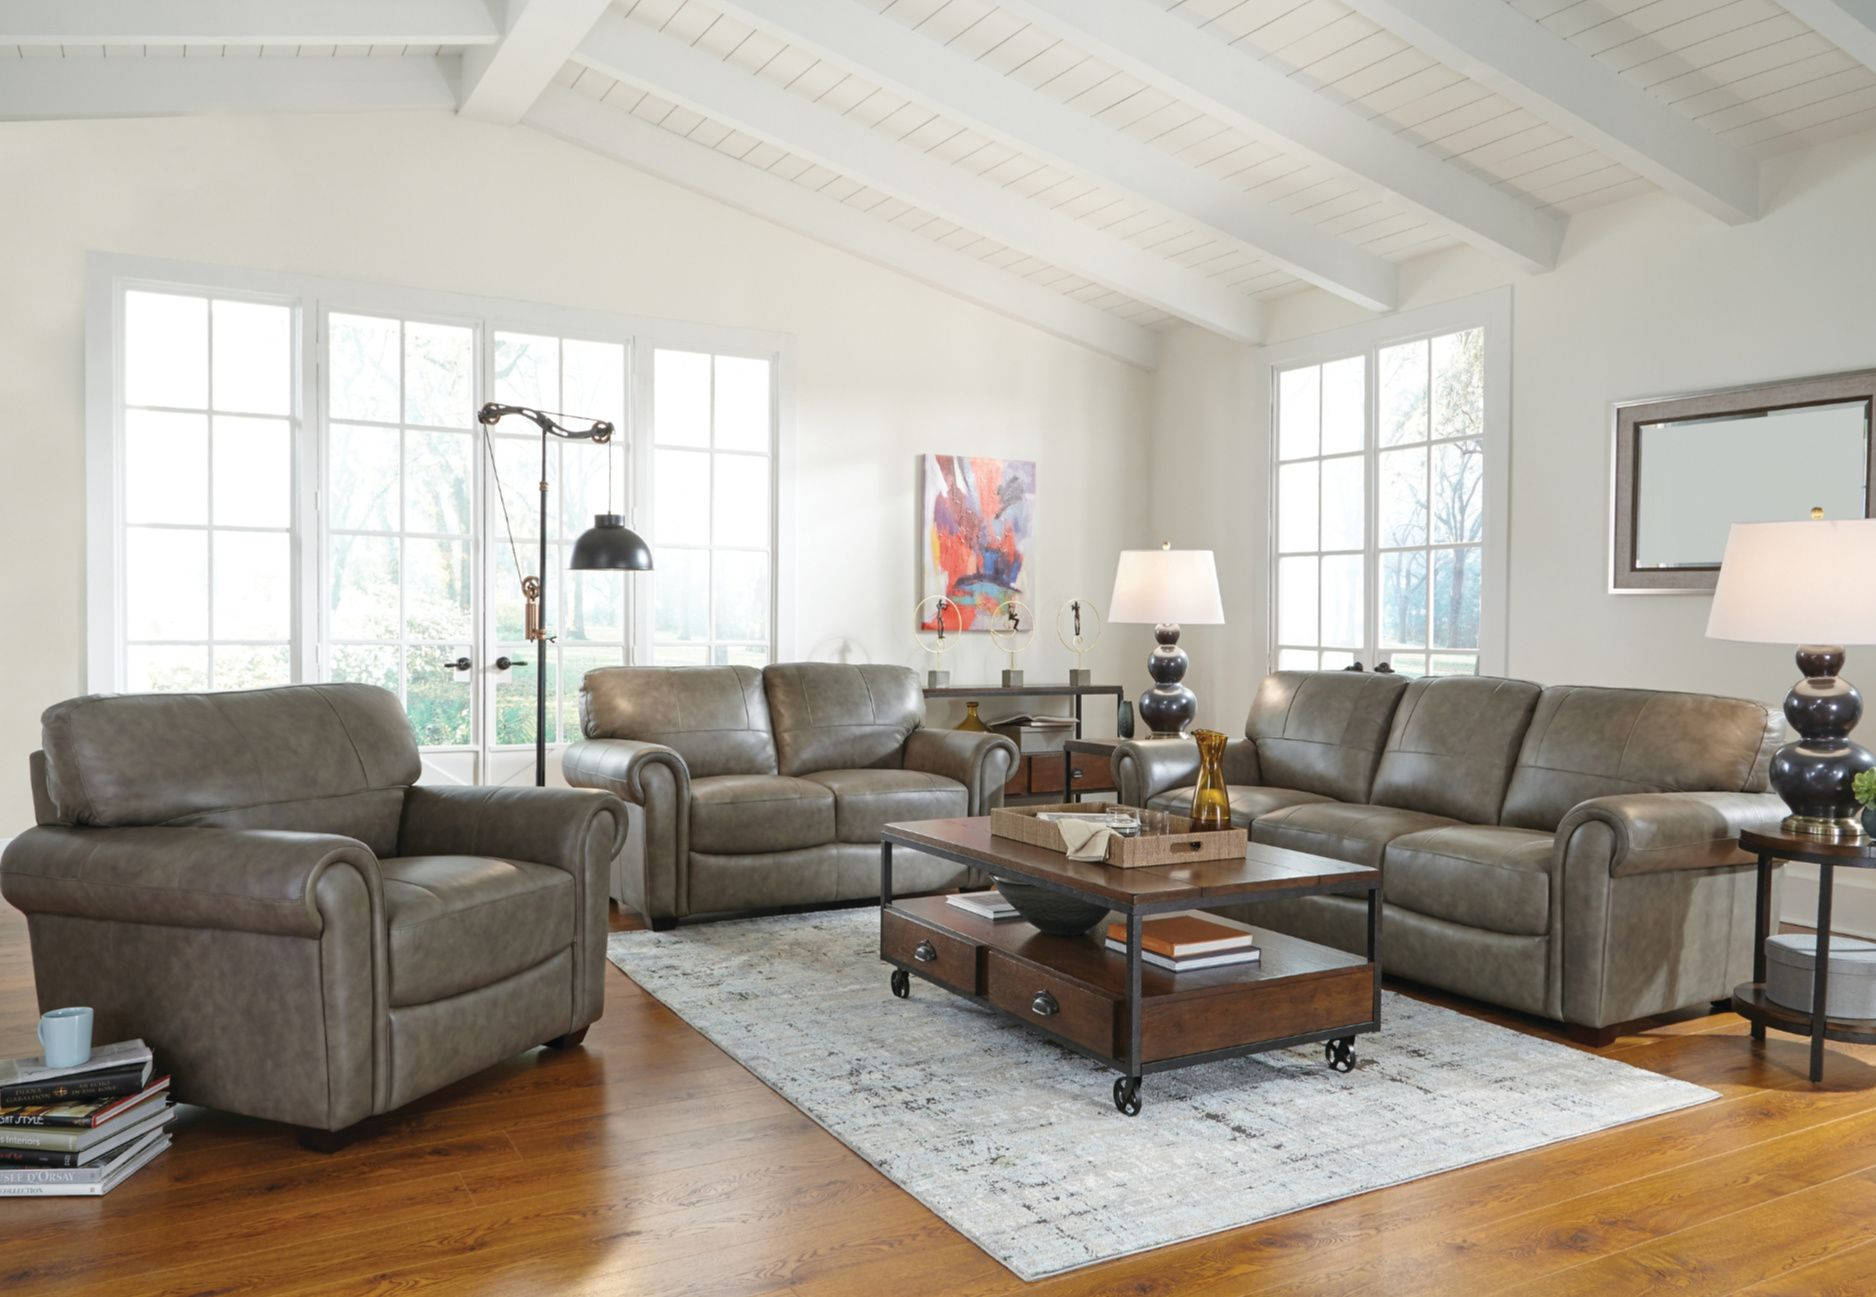 Timeless Traditional Style In Greige Leather Furniture Mattress Furniture Home Furniture